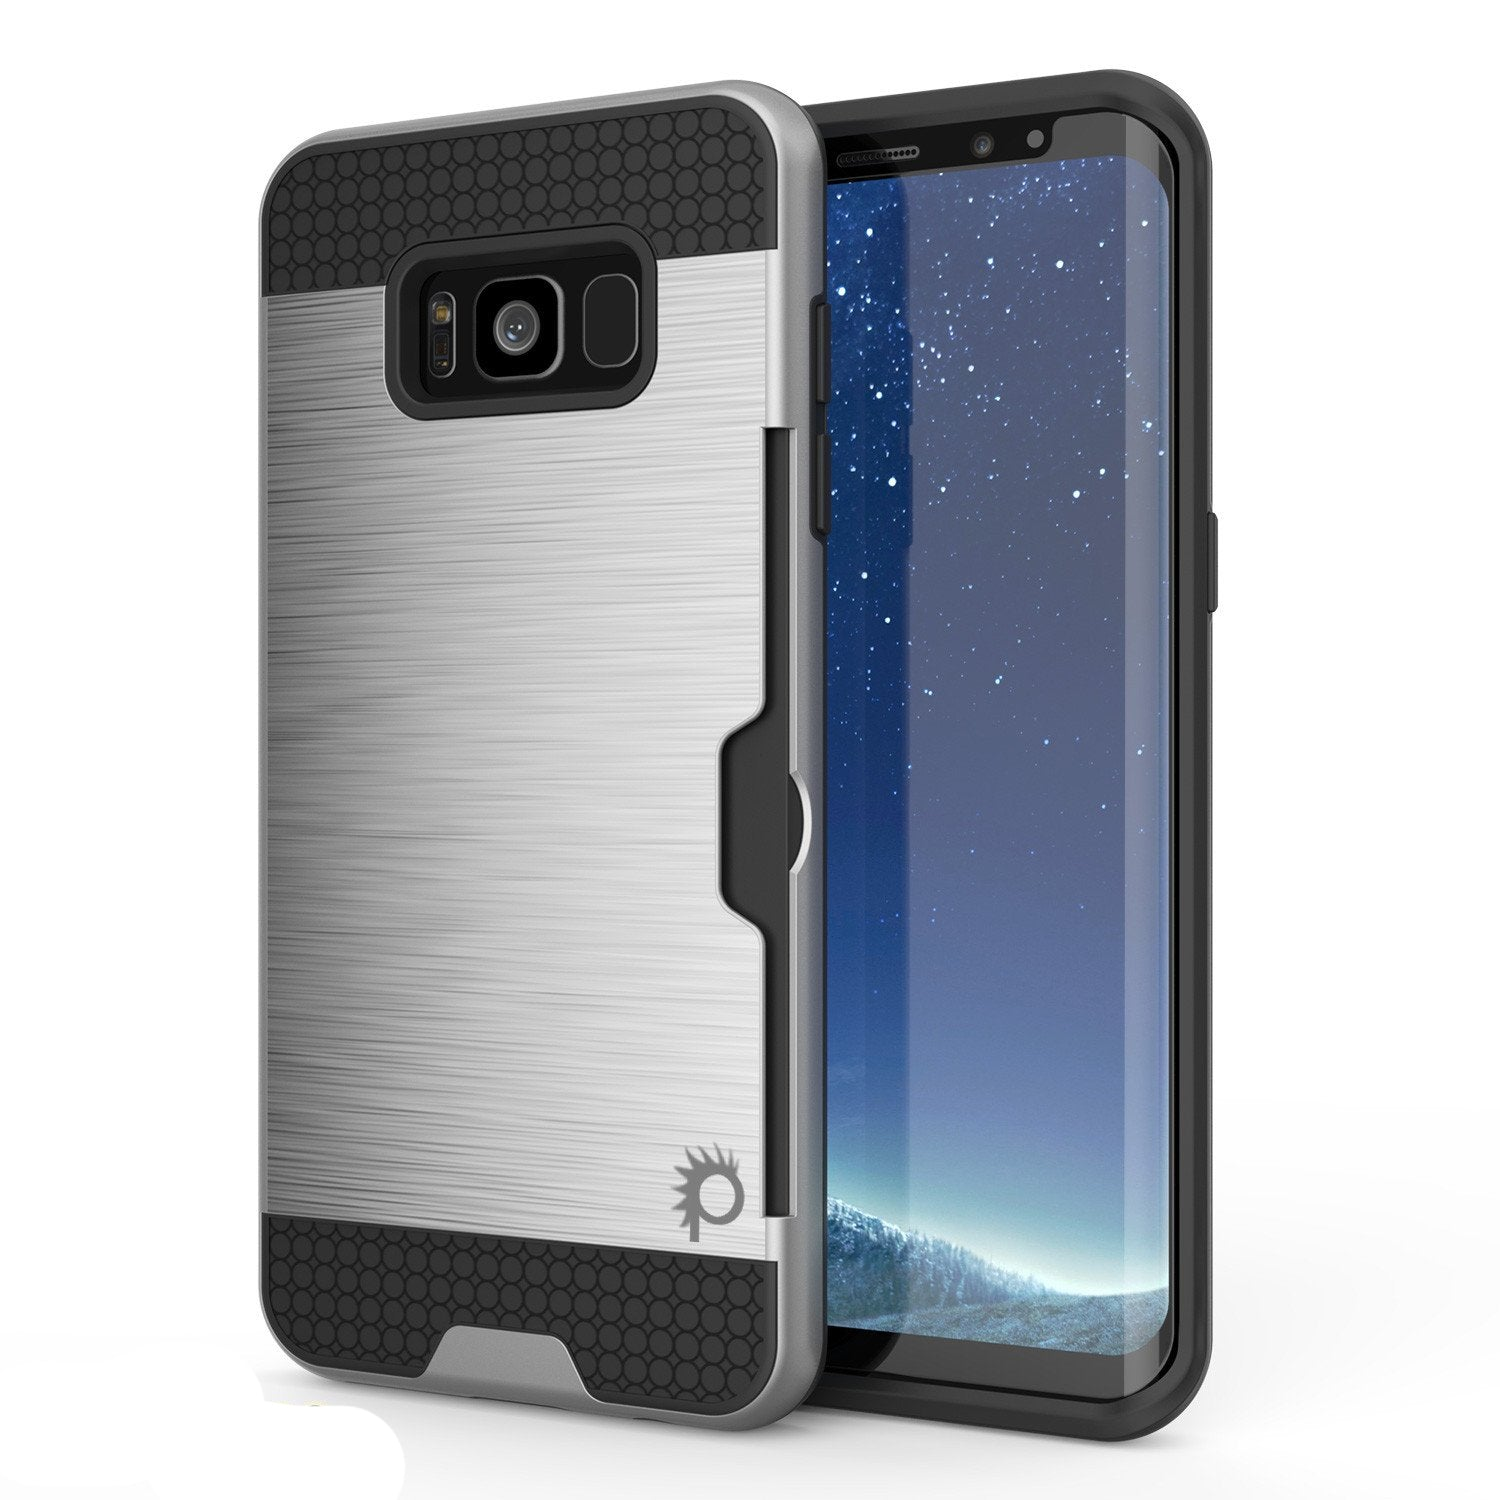 Galaxy S8 Case, PUNKcase [SLOT Series] Dual-Layer Armor Cover w/Integrated Anti-Shock System, Credit Card Slot & Screen Protector [Silver]